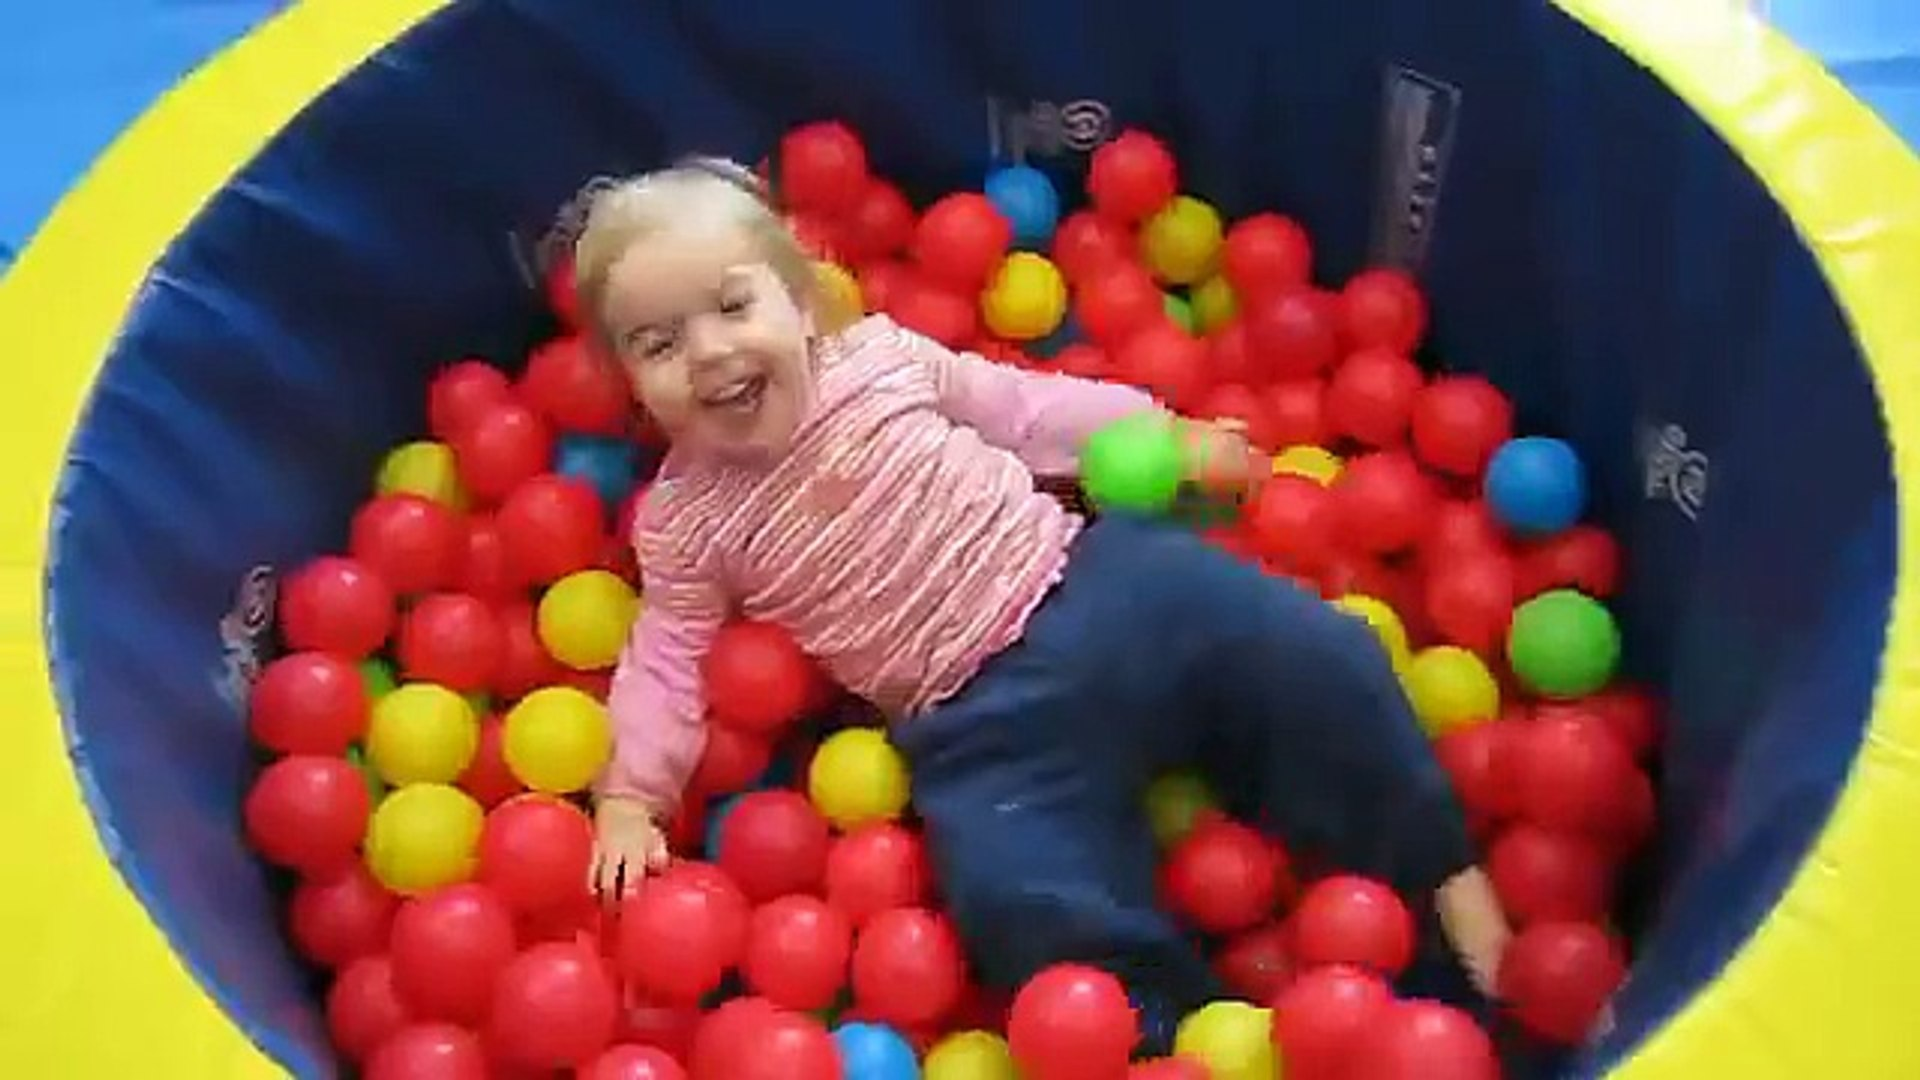 Kids playing in ball pit